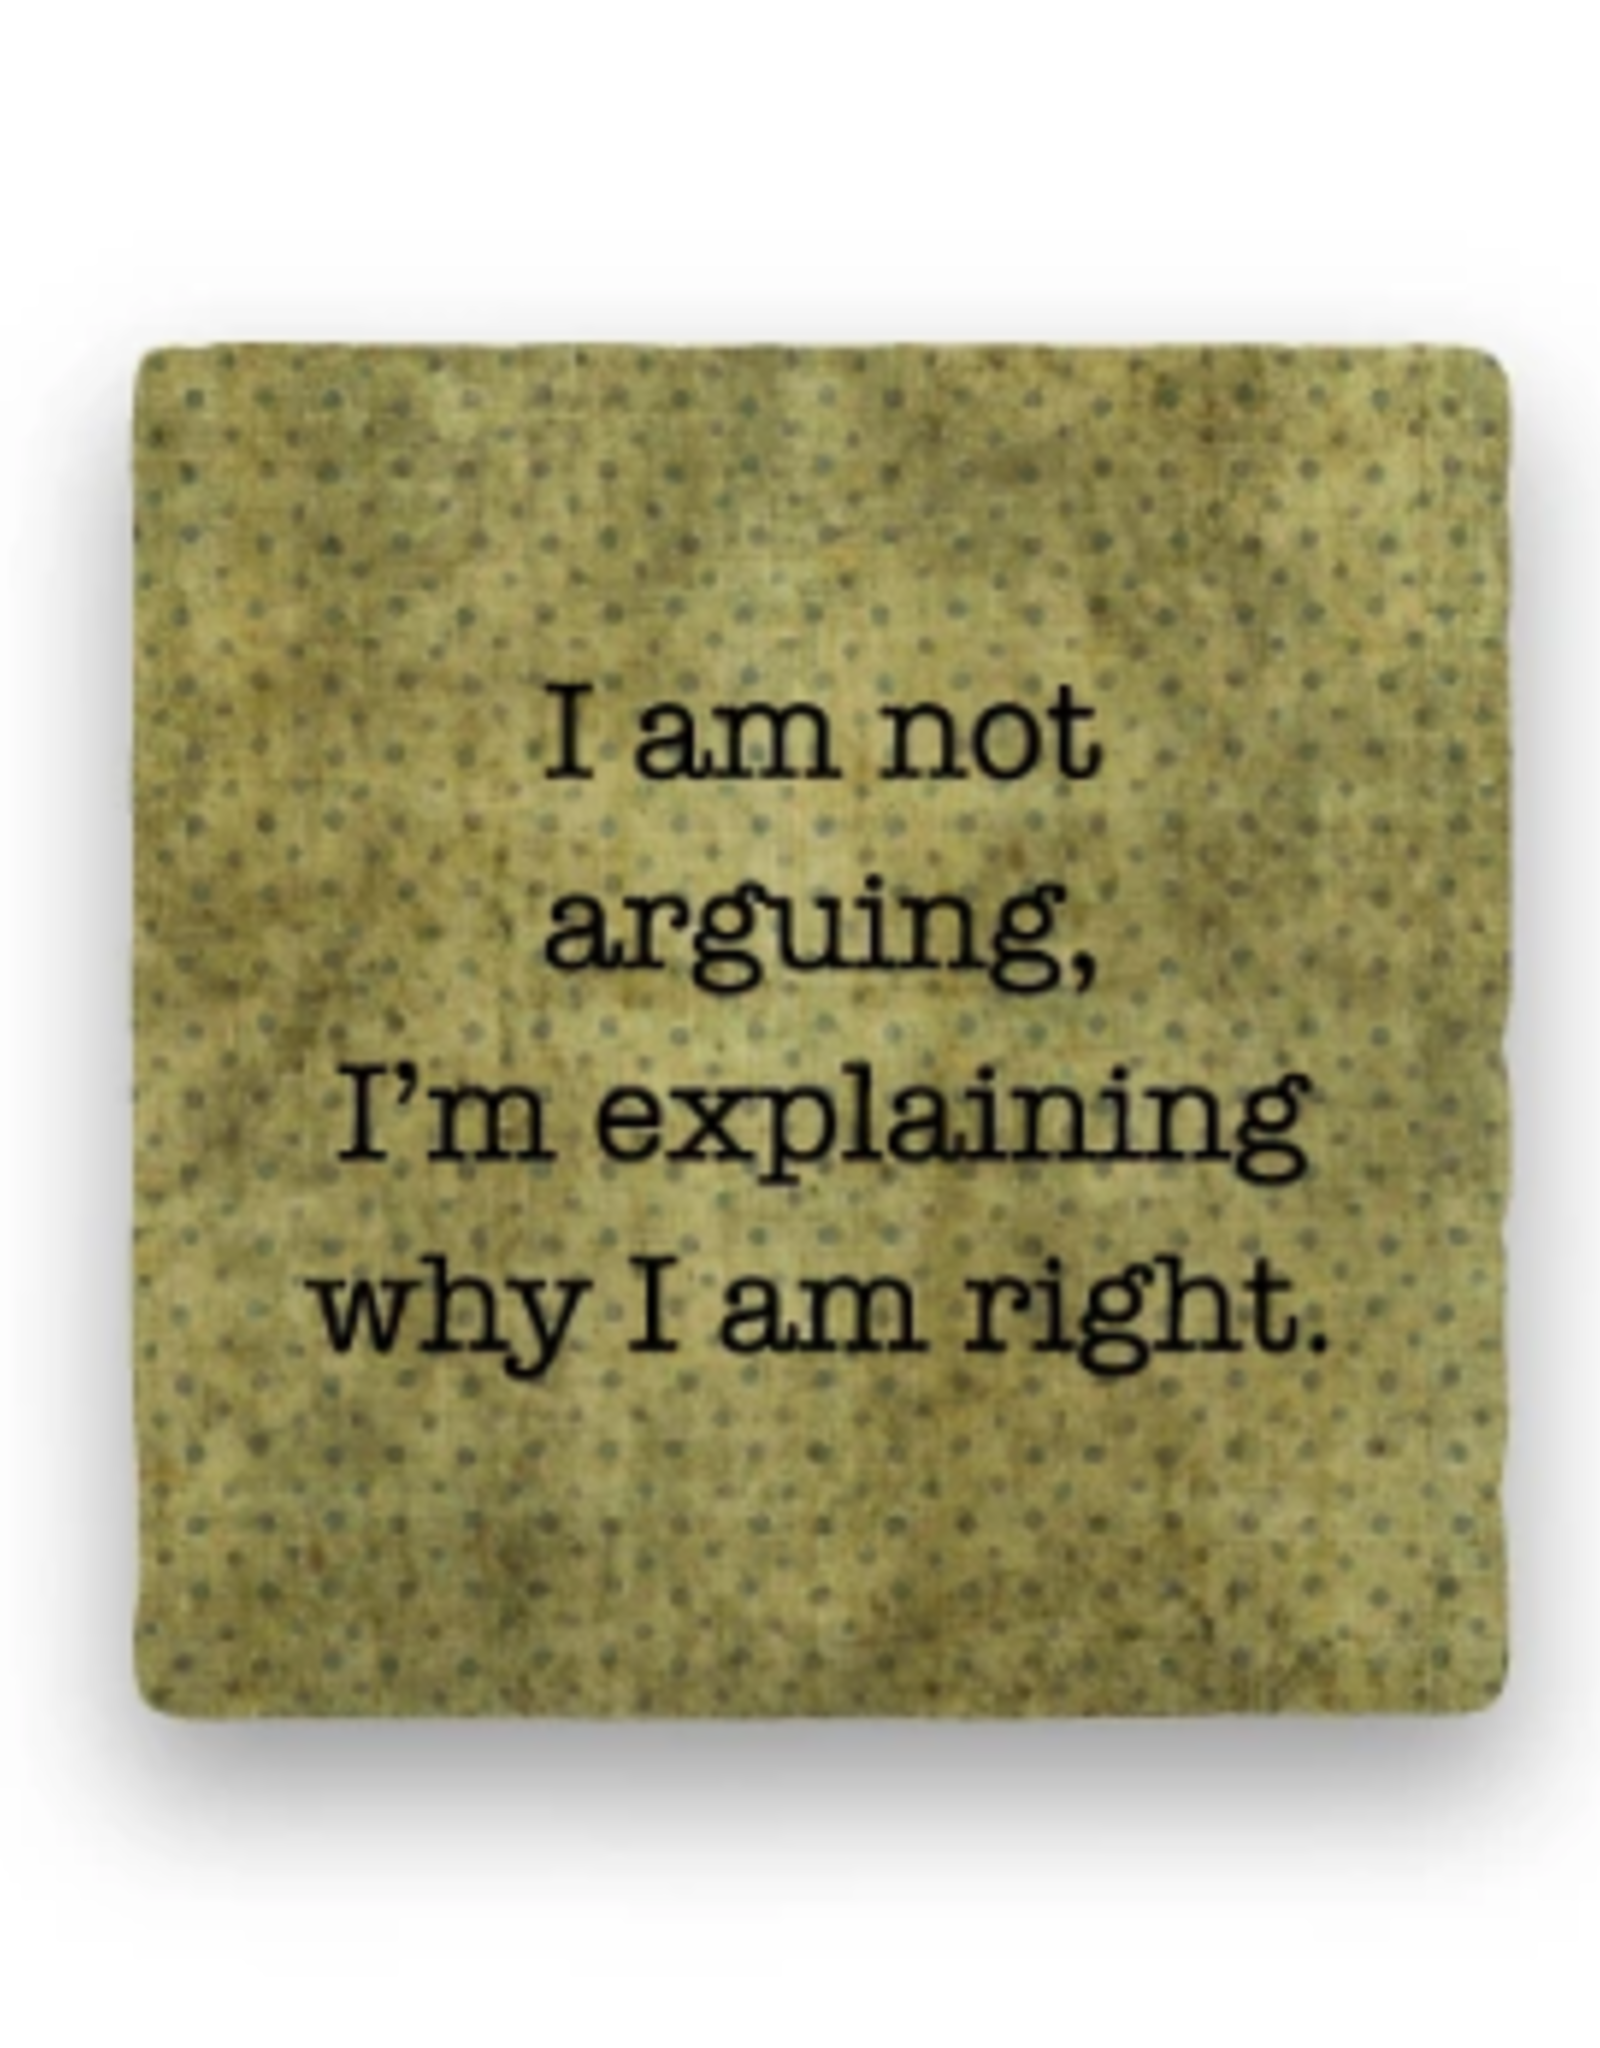 Paisley & Parsley Designs Coaster, Arguing